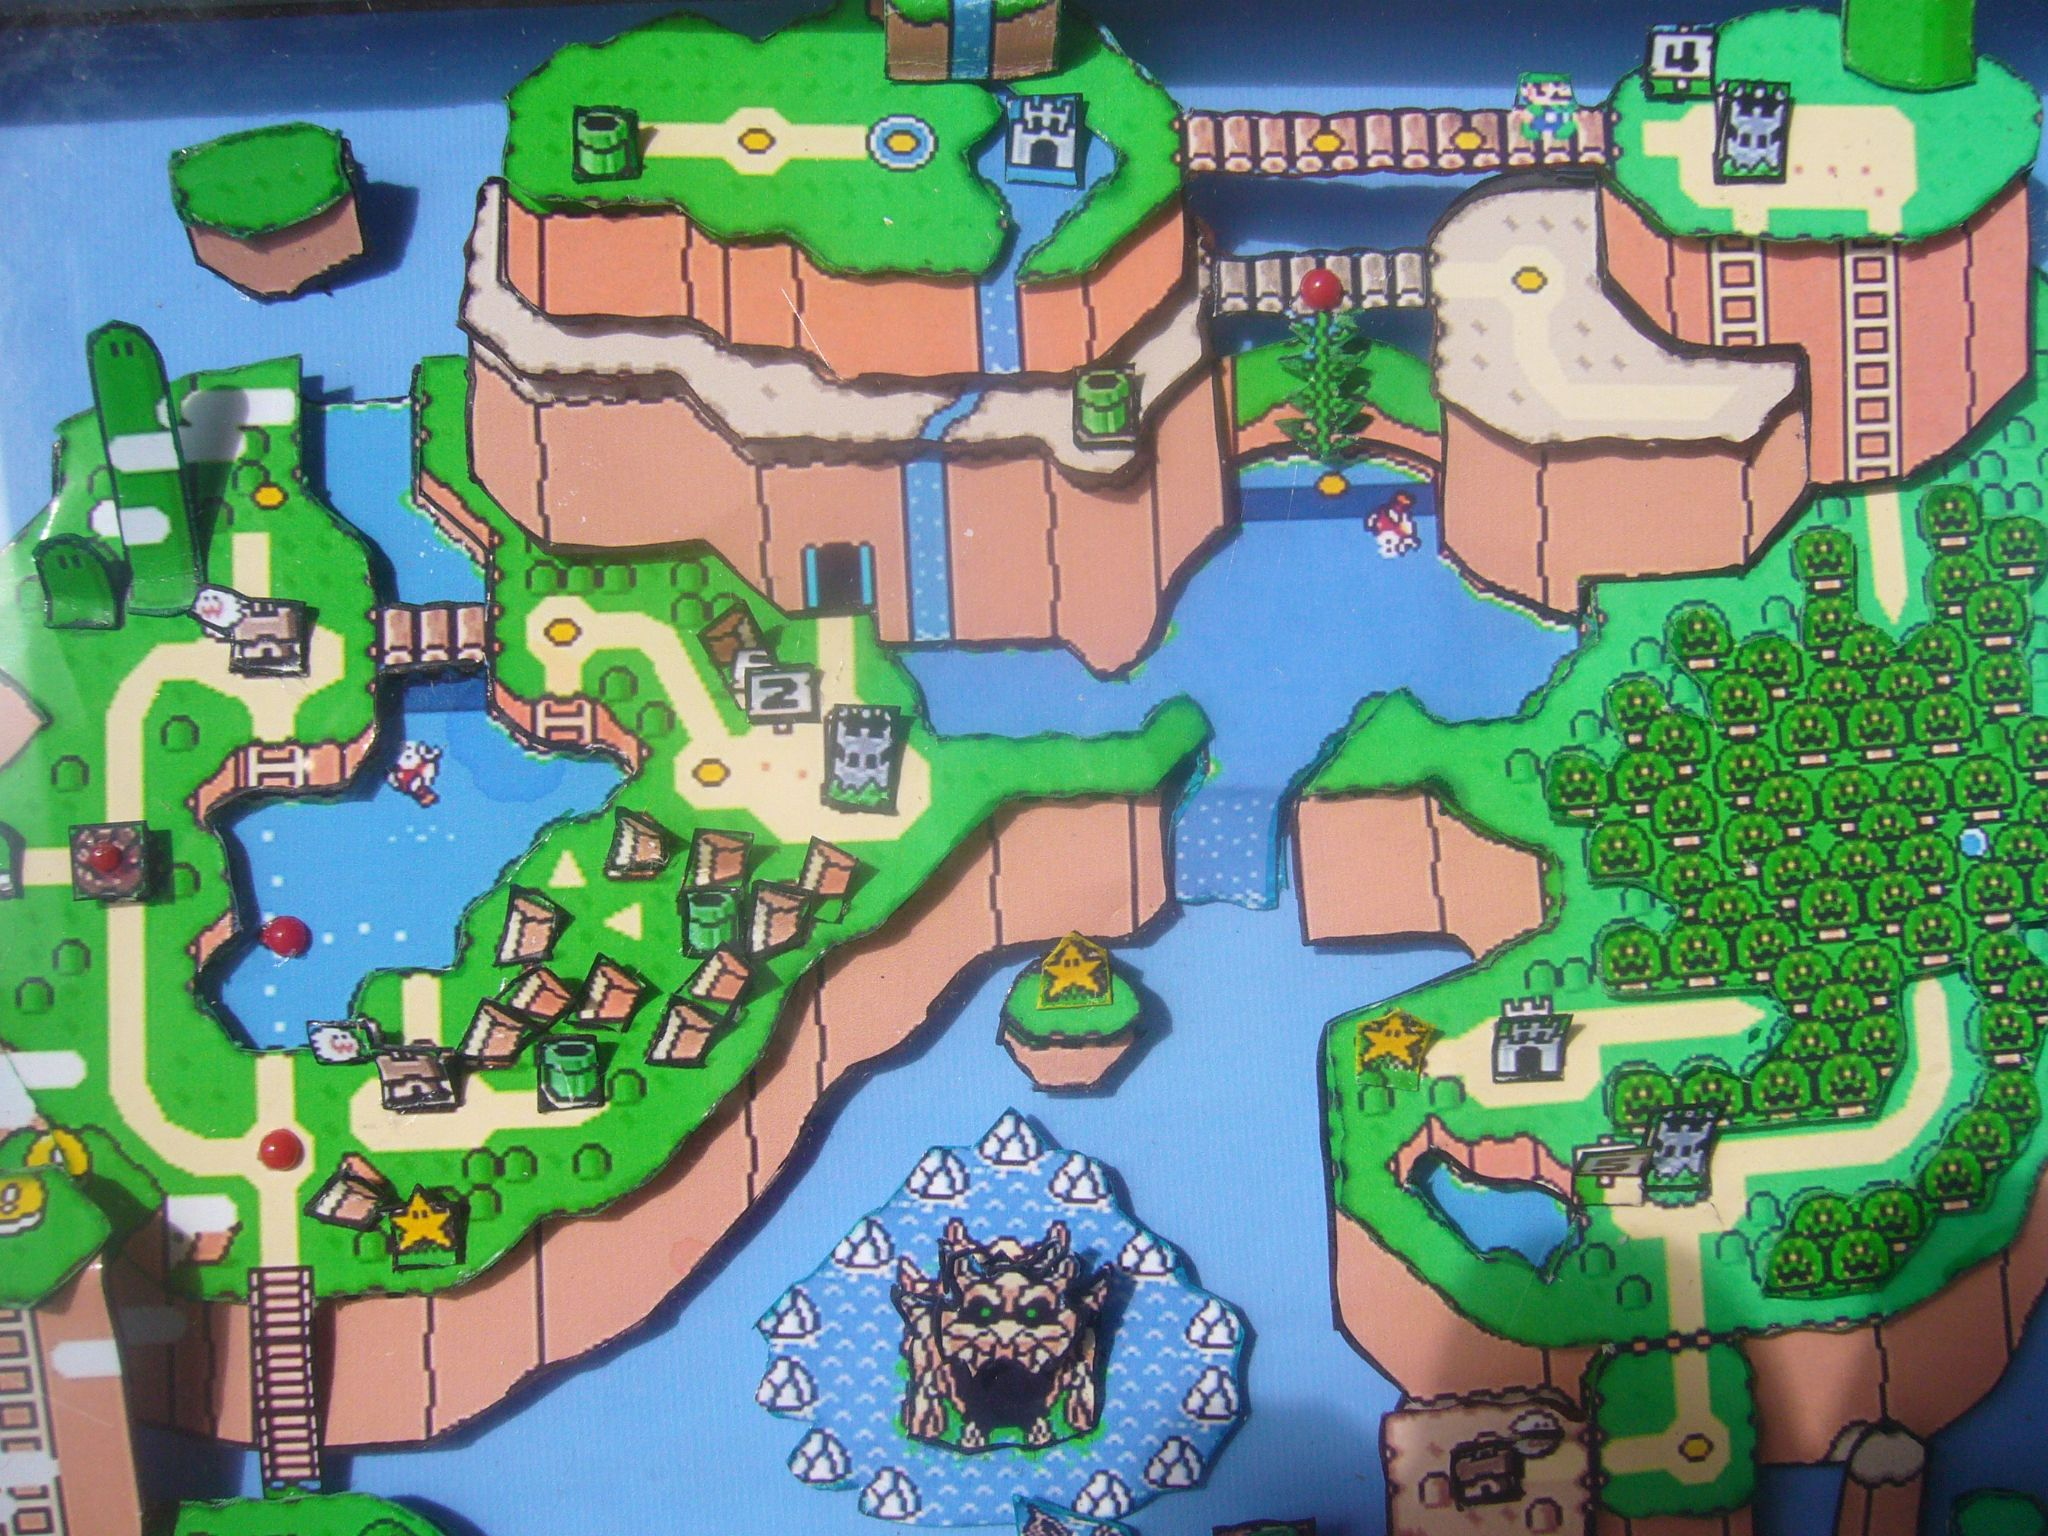 Super Mario World 3D Map Art on map of moshi monsters, map of fire emblem, map of oregon trail, map of kingdom hearts, map of sports, map of pokemon, map of sesame street, map of luigi's mansion, map of angry birds, map of baseball, map of hello kitty,